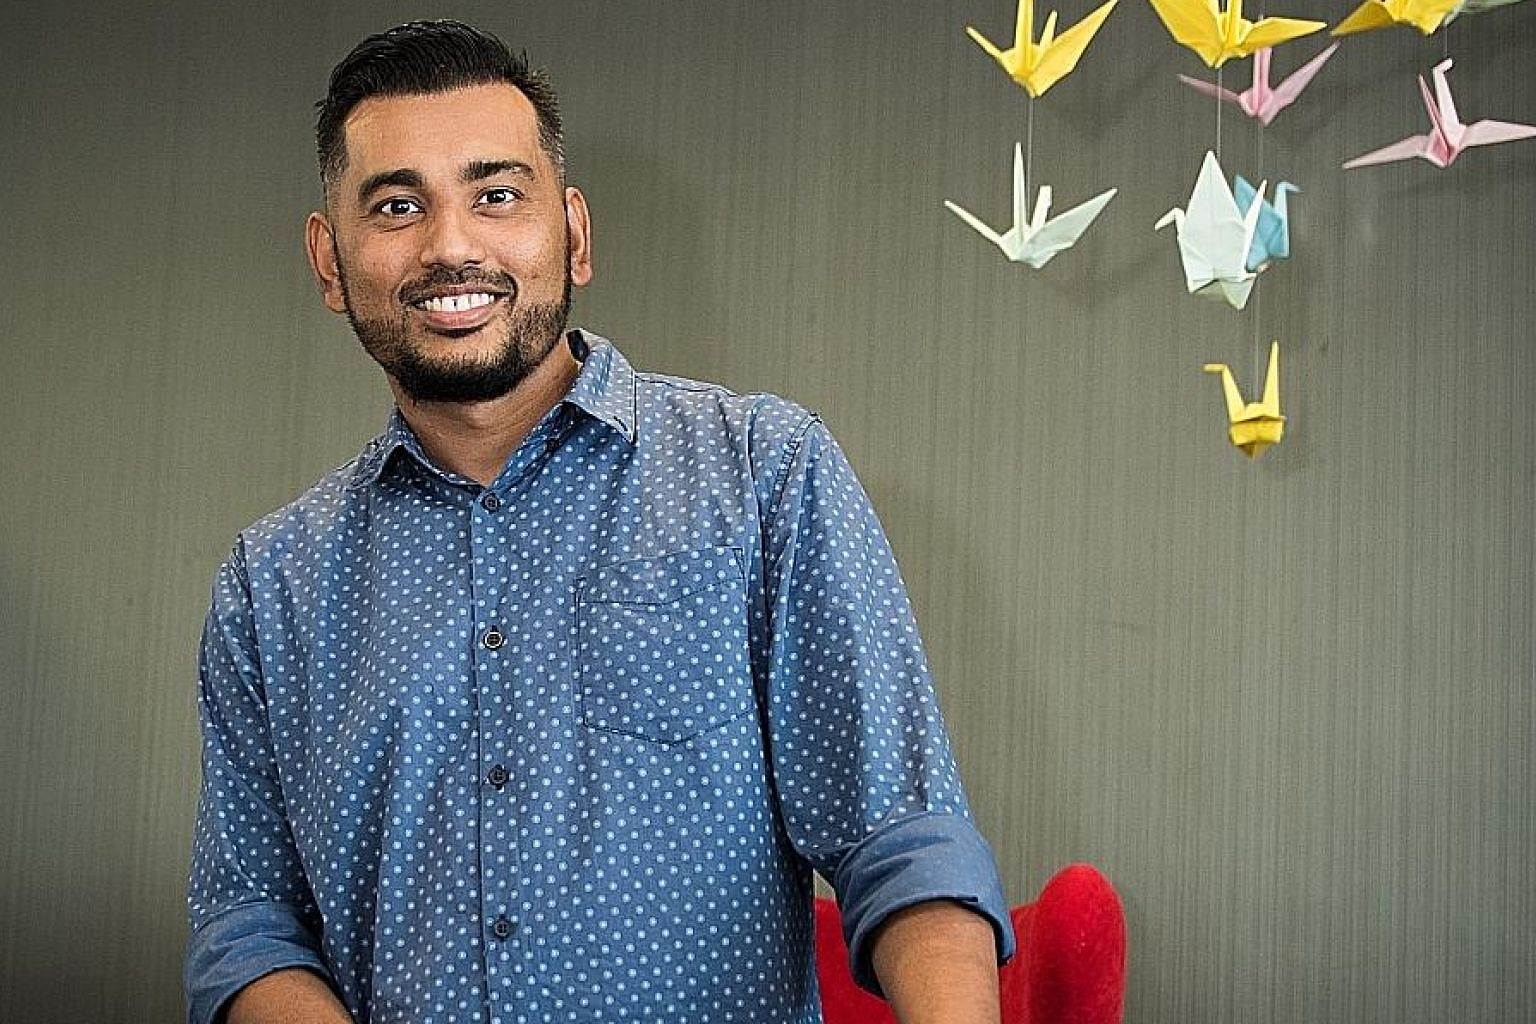 Mr Mohamed Rezal Yusof collapsed after his second heart attack in 2015 and was fitted with a left ventricular assist device as a bridge to transplant. He underwent a successful 11-hour heart transplant last year.